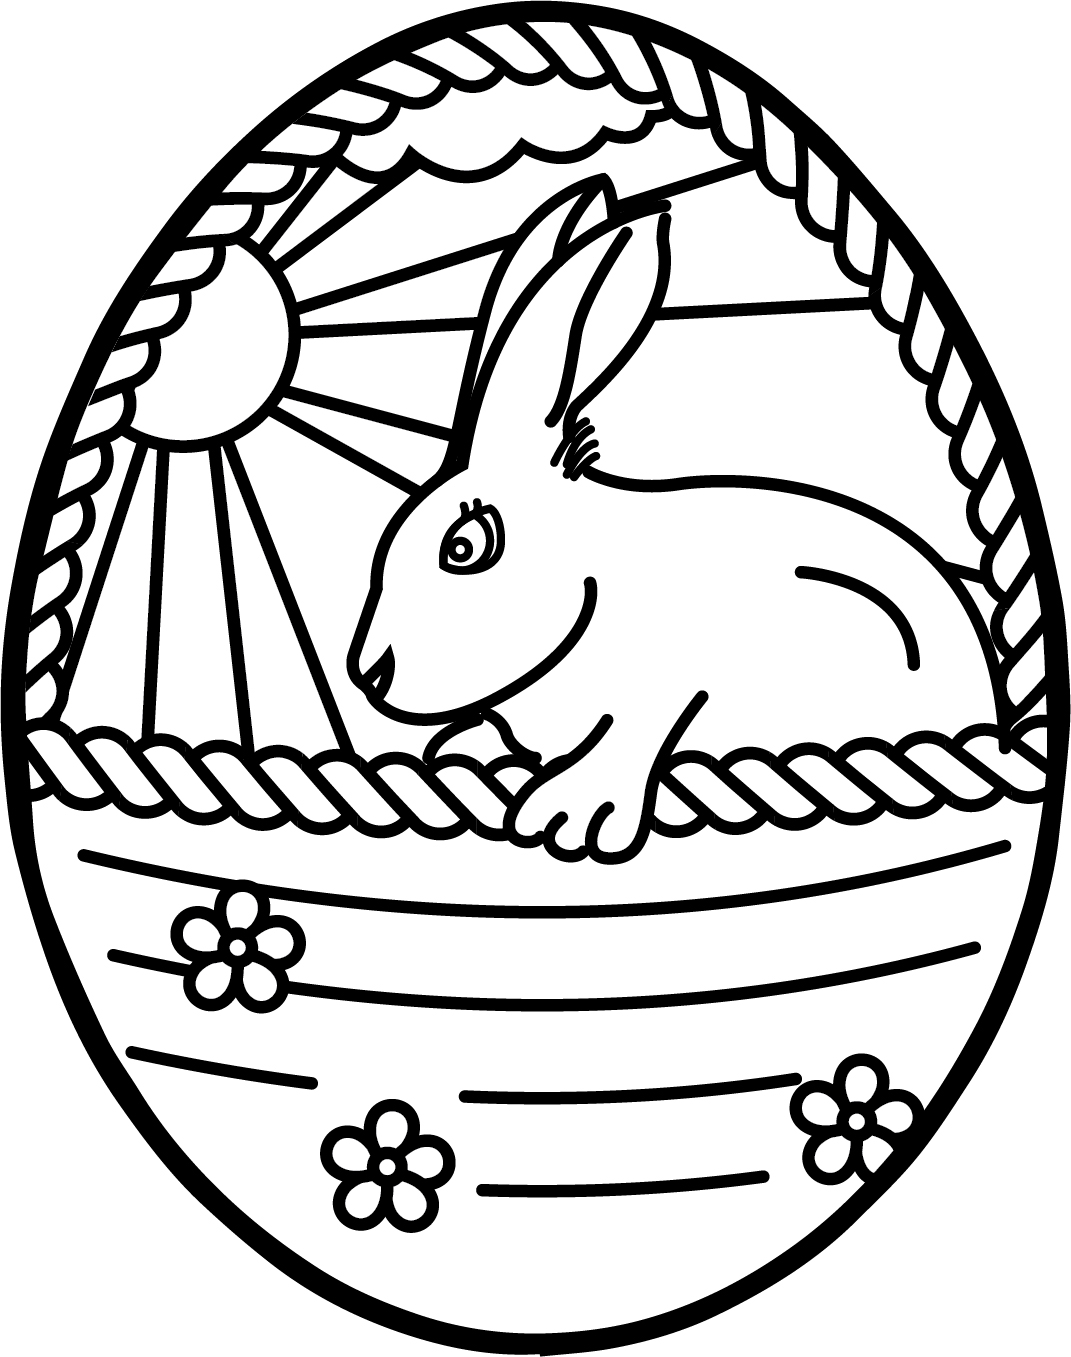 coloring pages of easter eggs easter egg coloring page 6 woo jr kids activities coloring pages eggs of easter